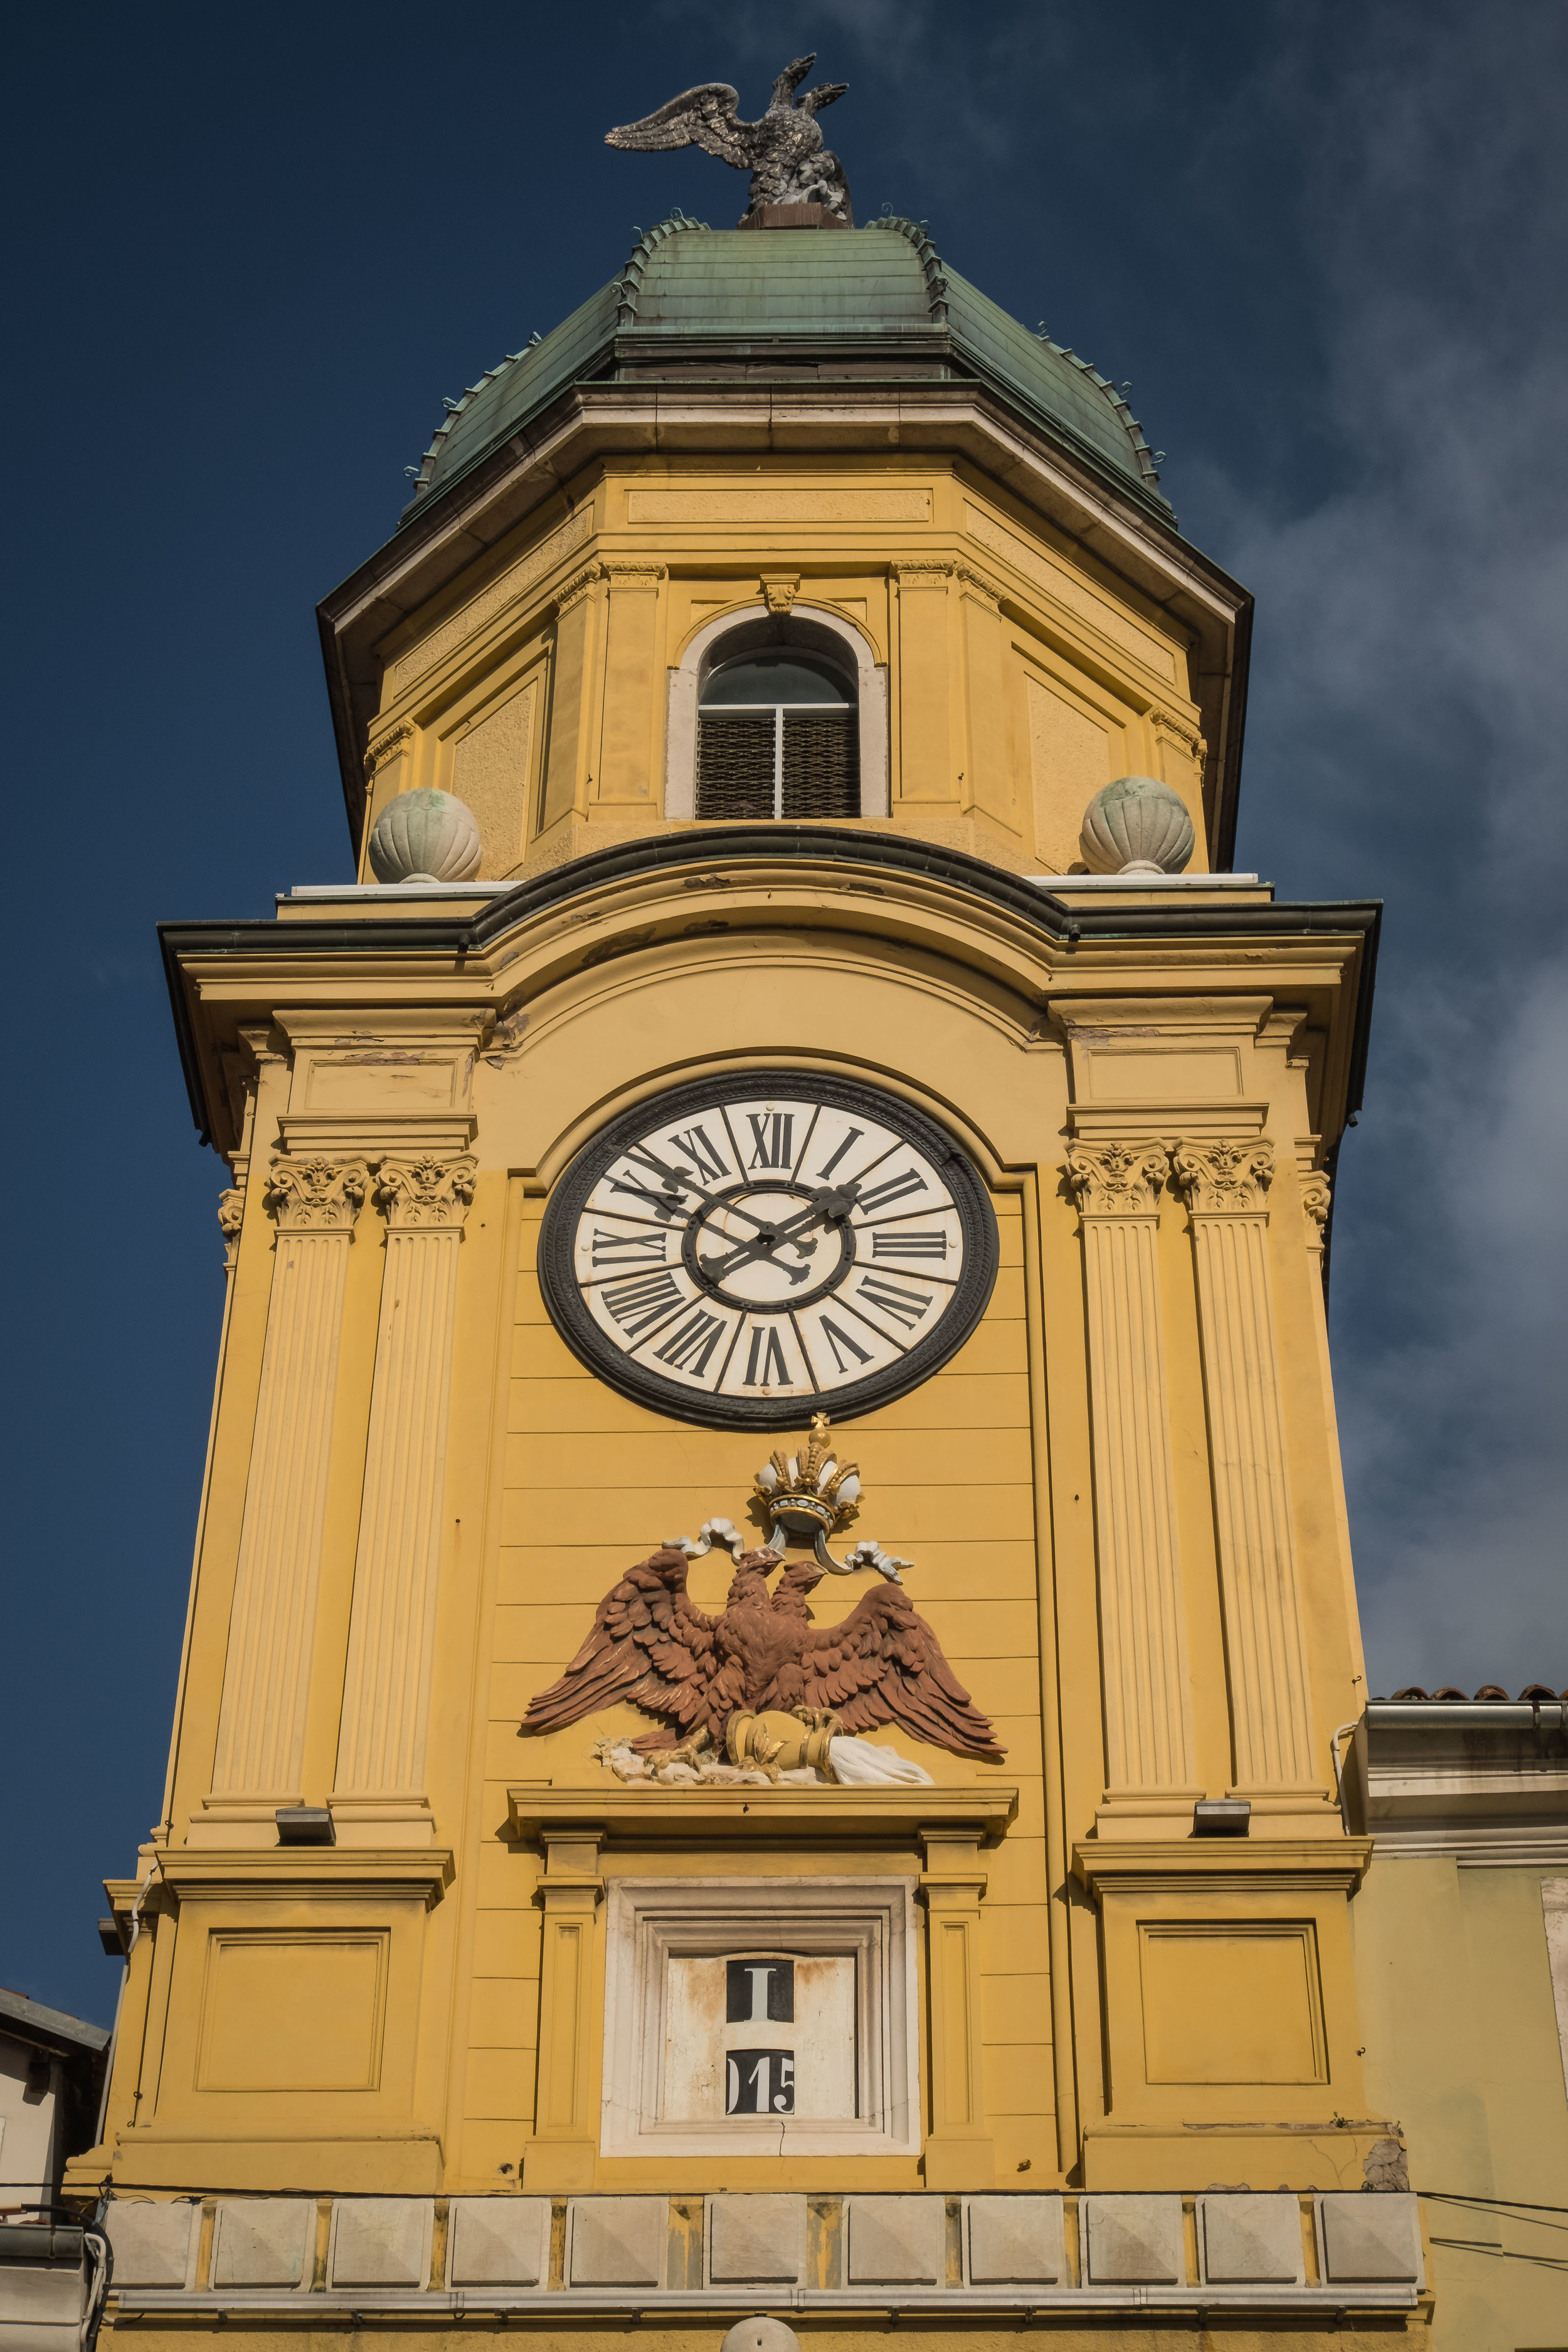 Rijeka's clock tower with double-headed eagles